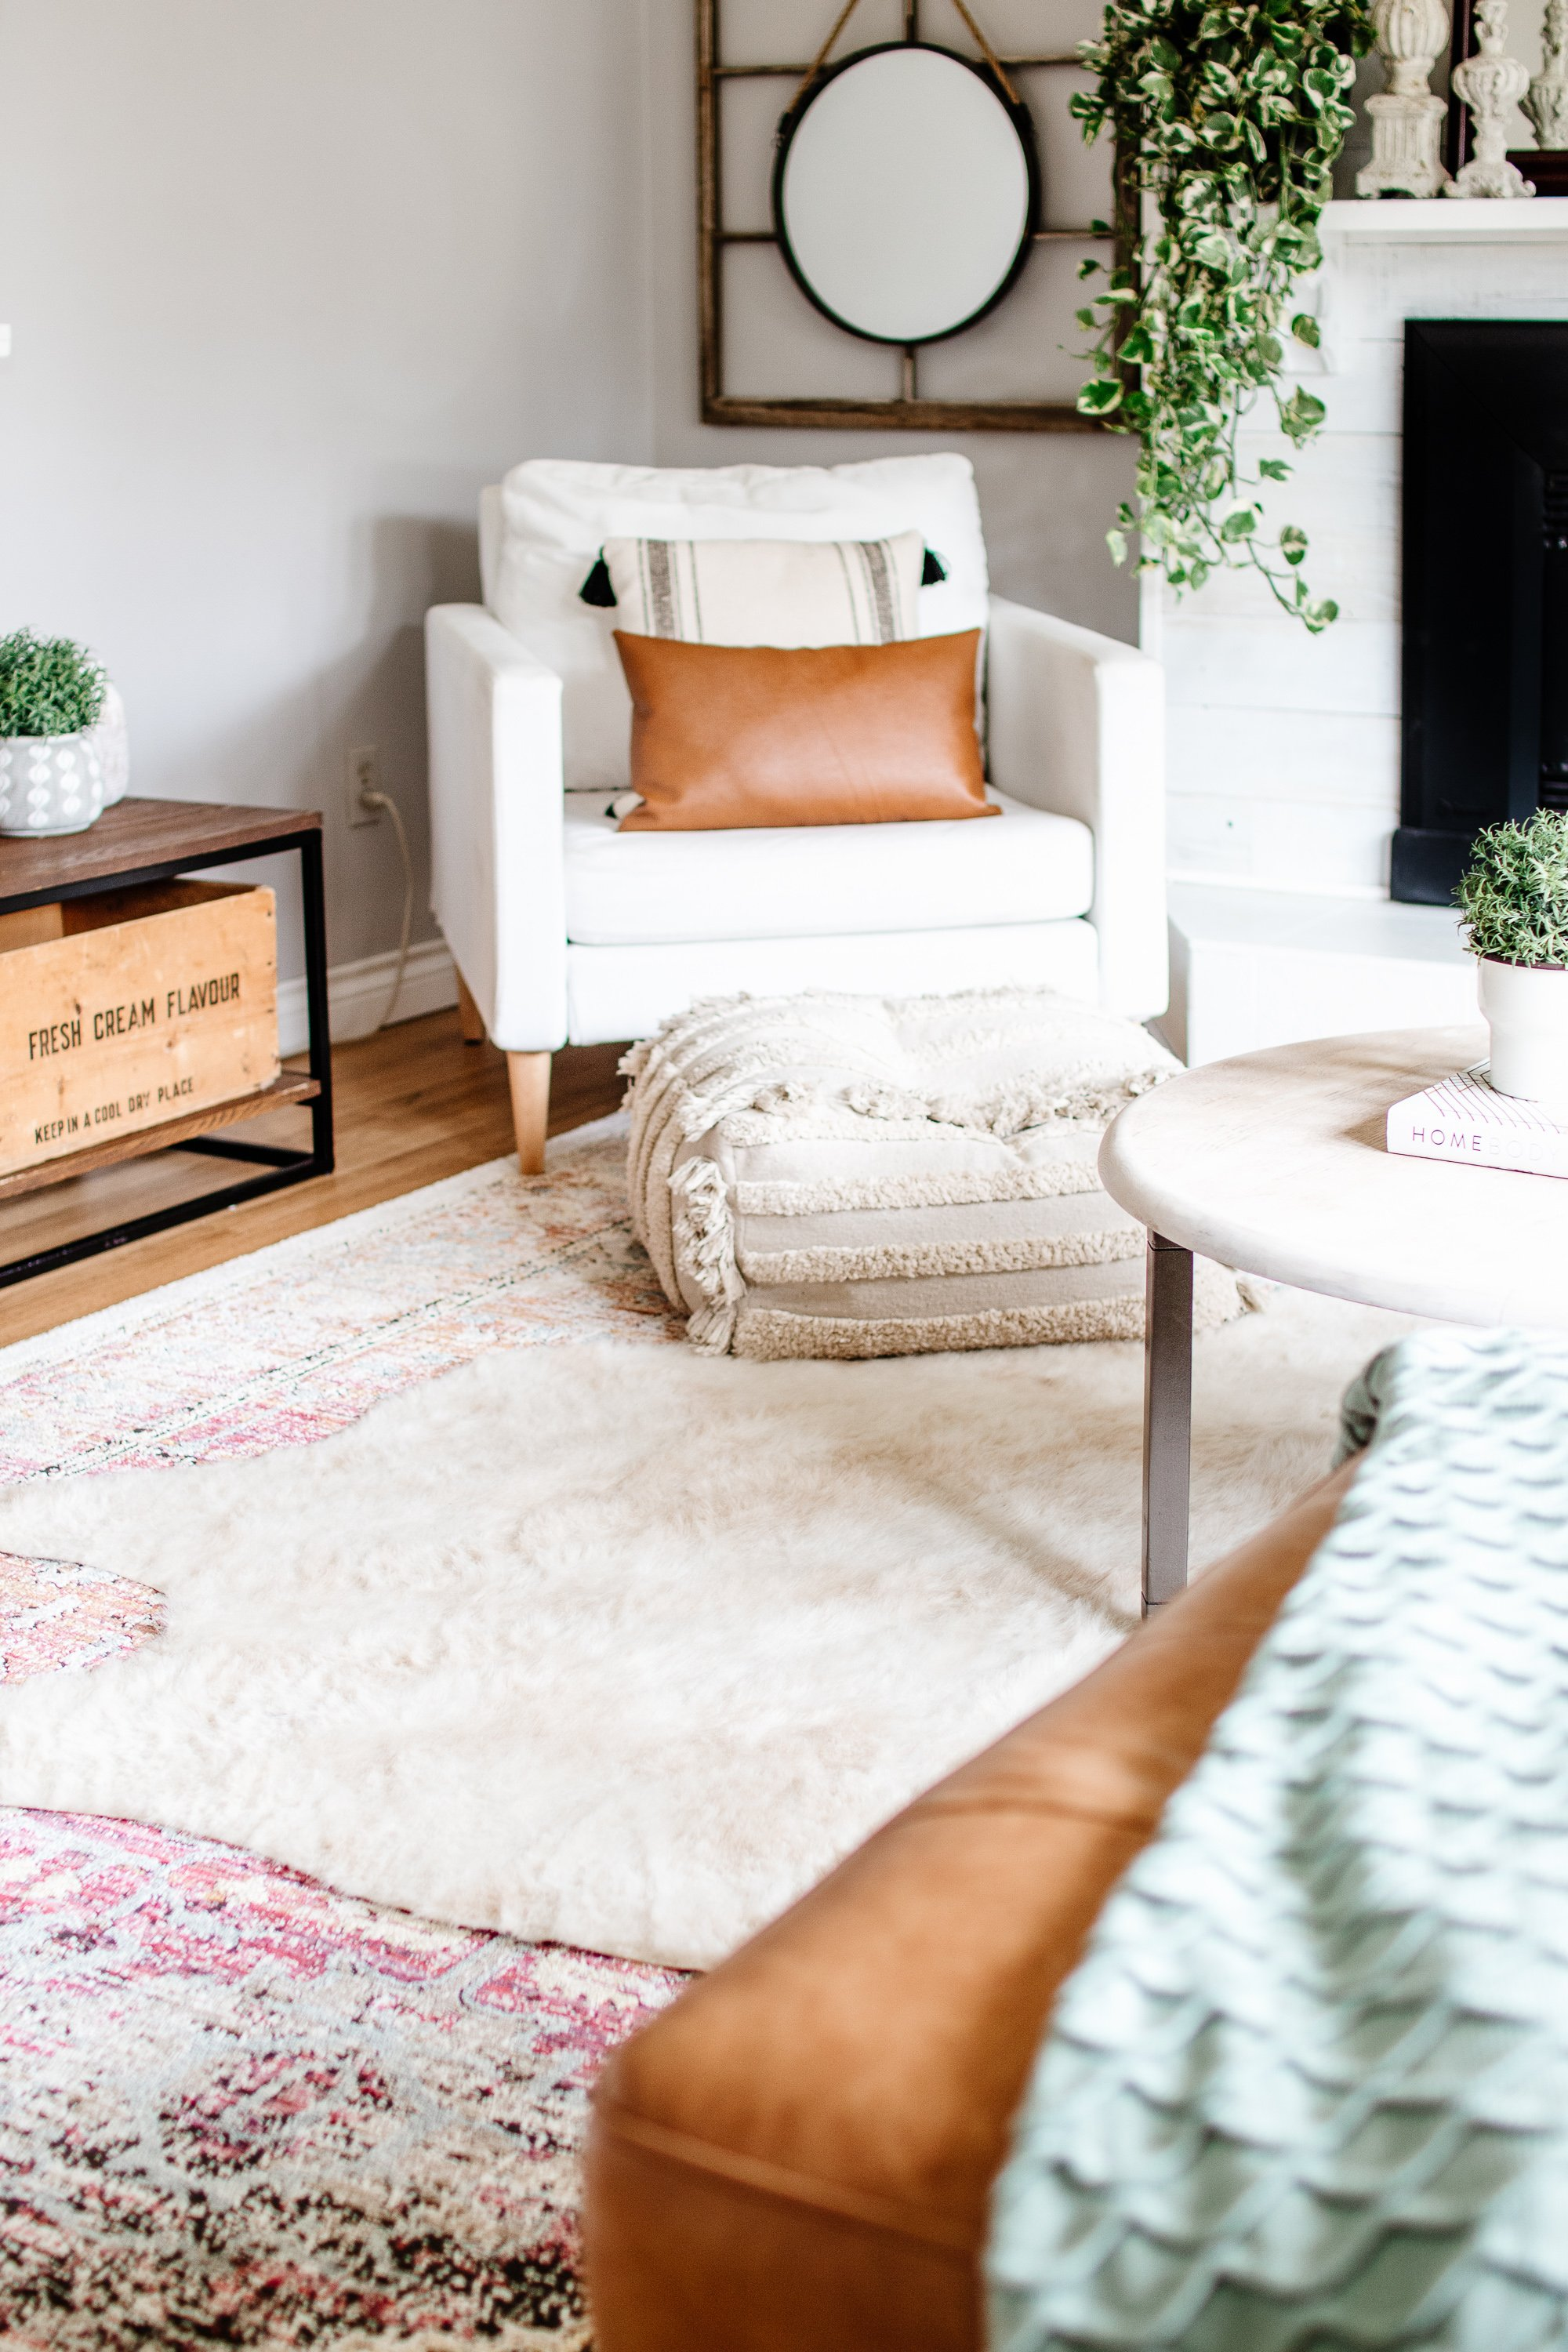 Spring Home Walk Through. Get Major Inspiration With These Canadian Home Decor Bloggers. Easy Spring Decorating For Cheap. Modern Bohemian Farmhouse Decor